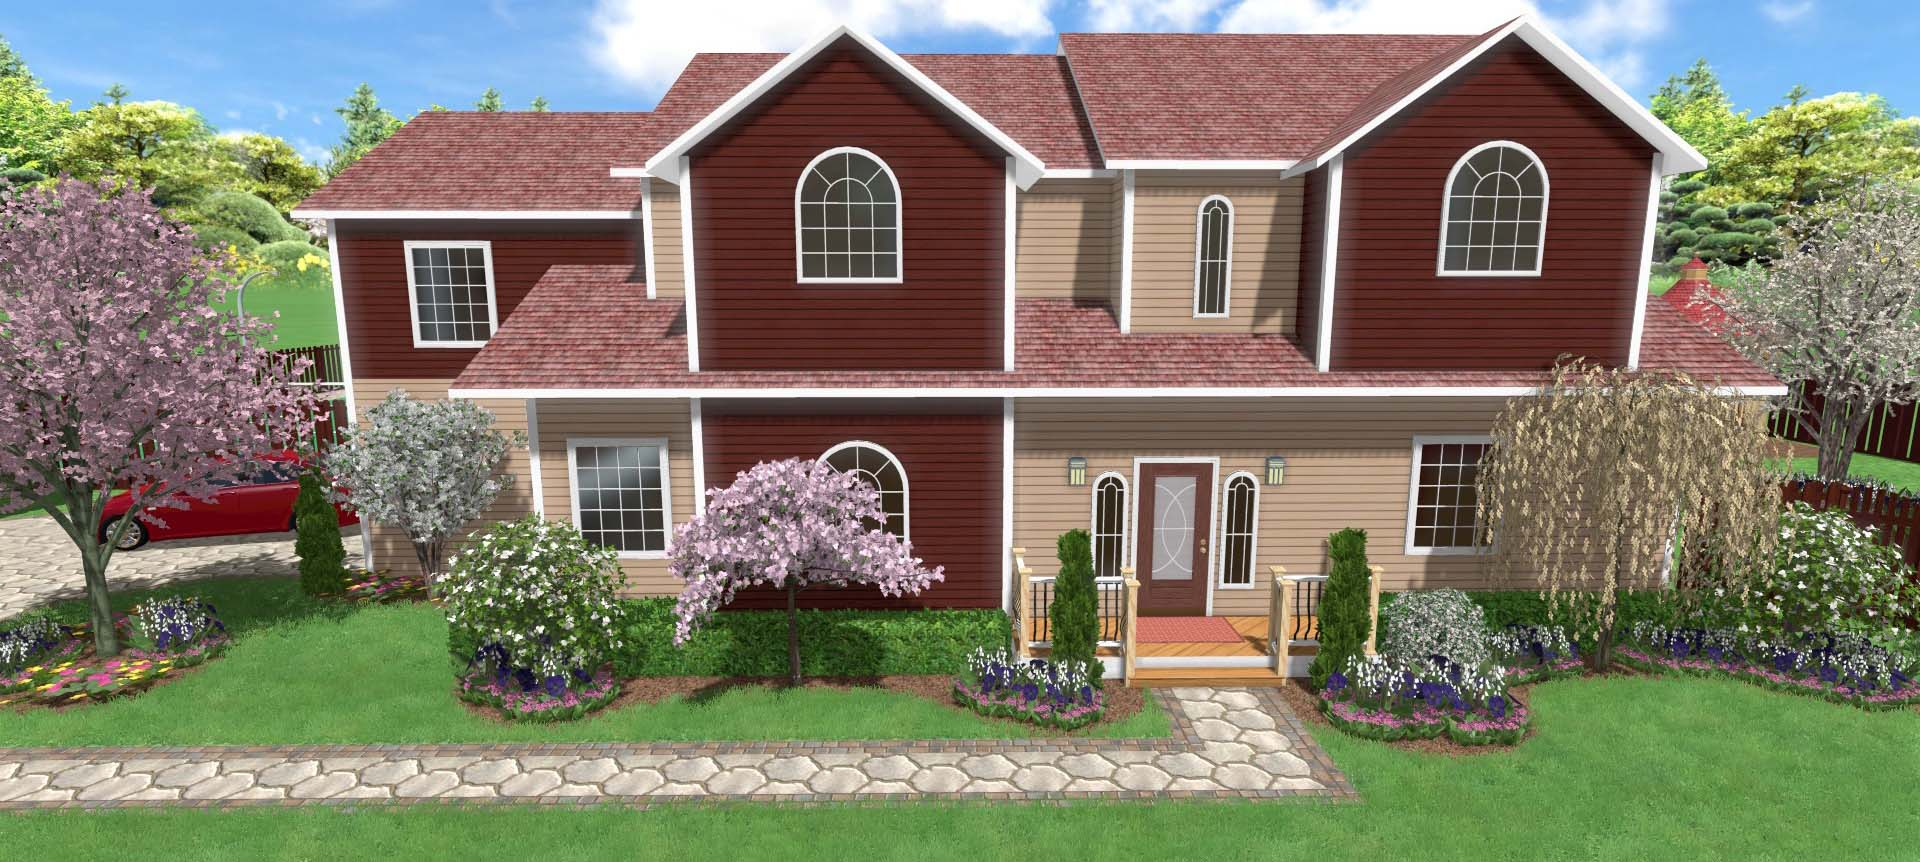 Home landscaping software for Design ideas for home landscaping